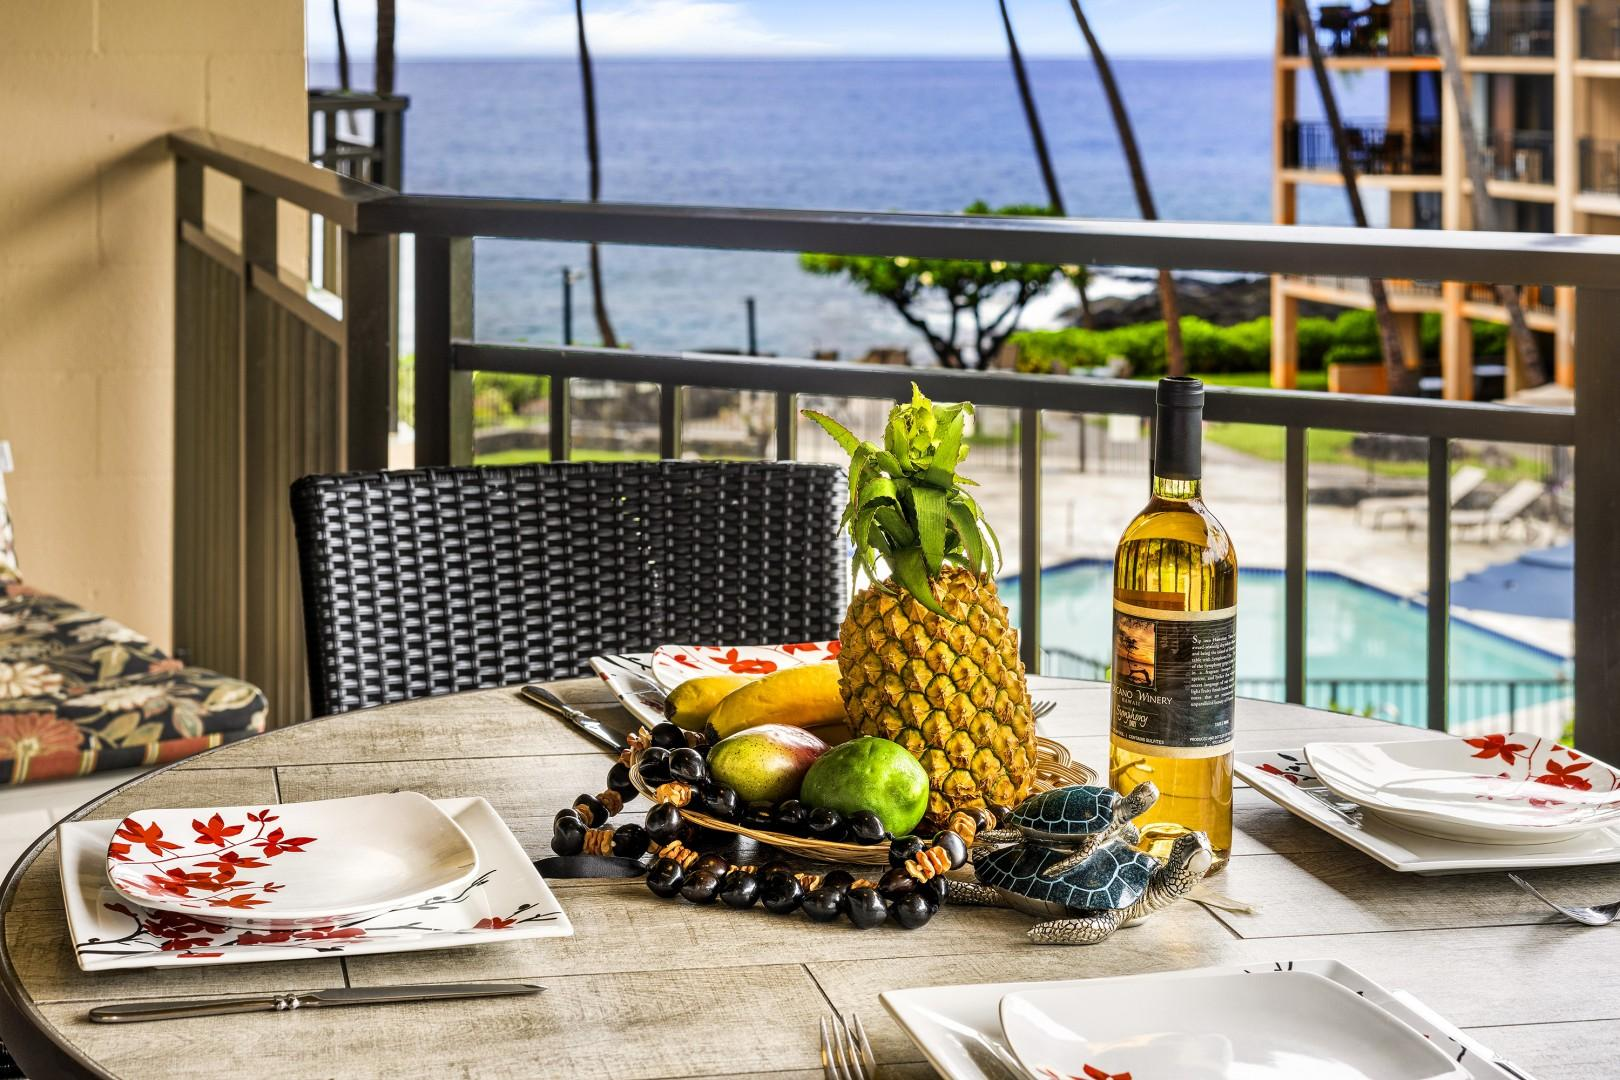 No better setting than on the Lanai at Kona Makai 2303!